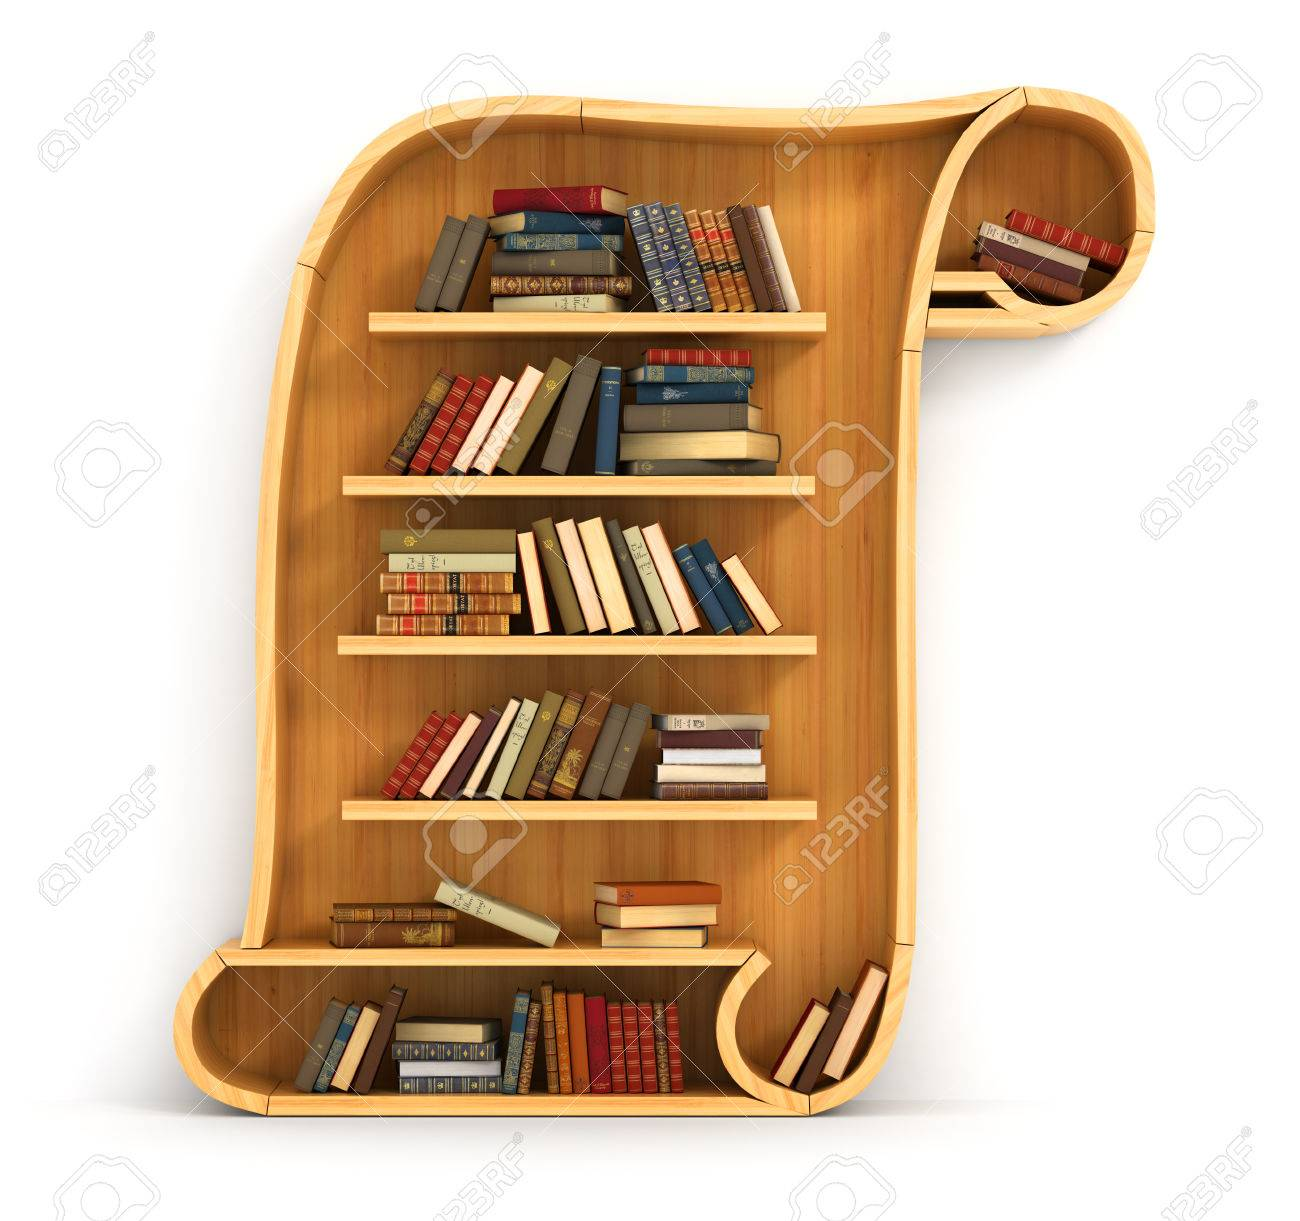 Wooden Bookshelf In Form Of Scroll History A Human Have